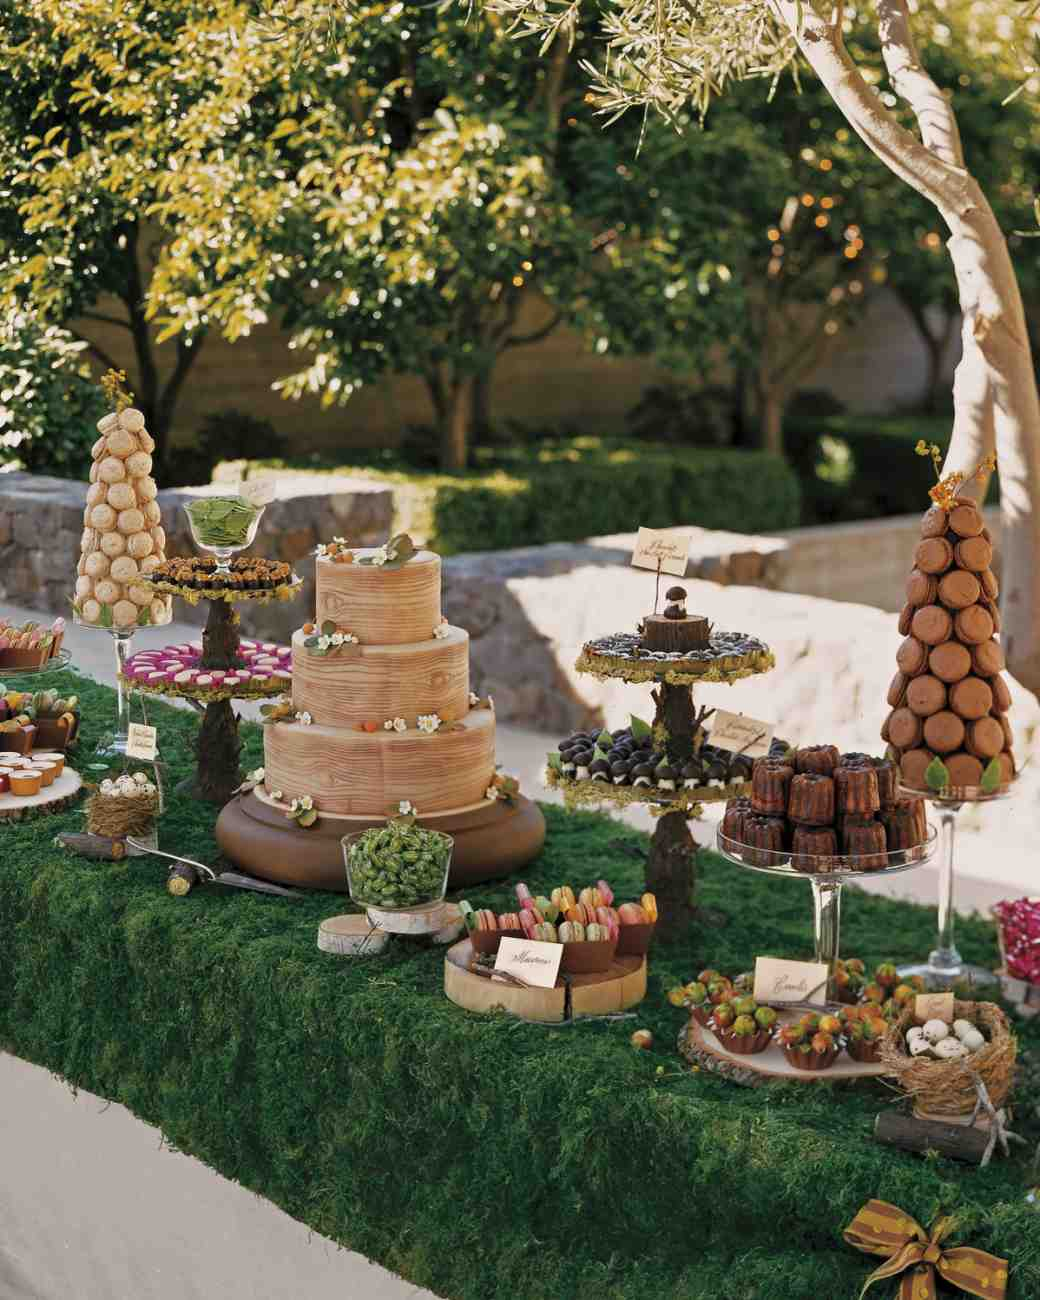 20+ Rustic Country Wedding Cakes For The Perfect Fall